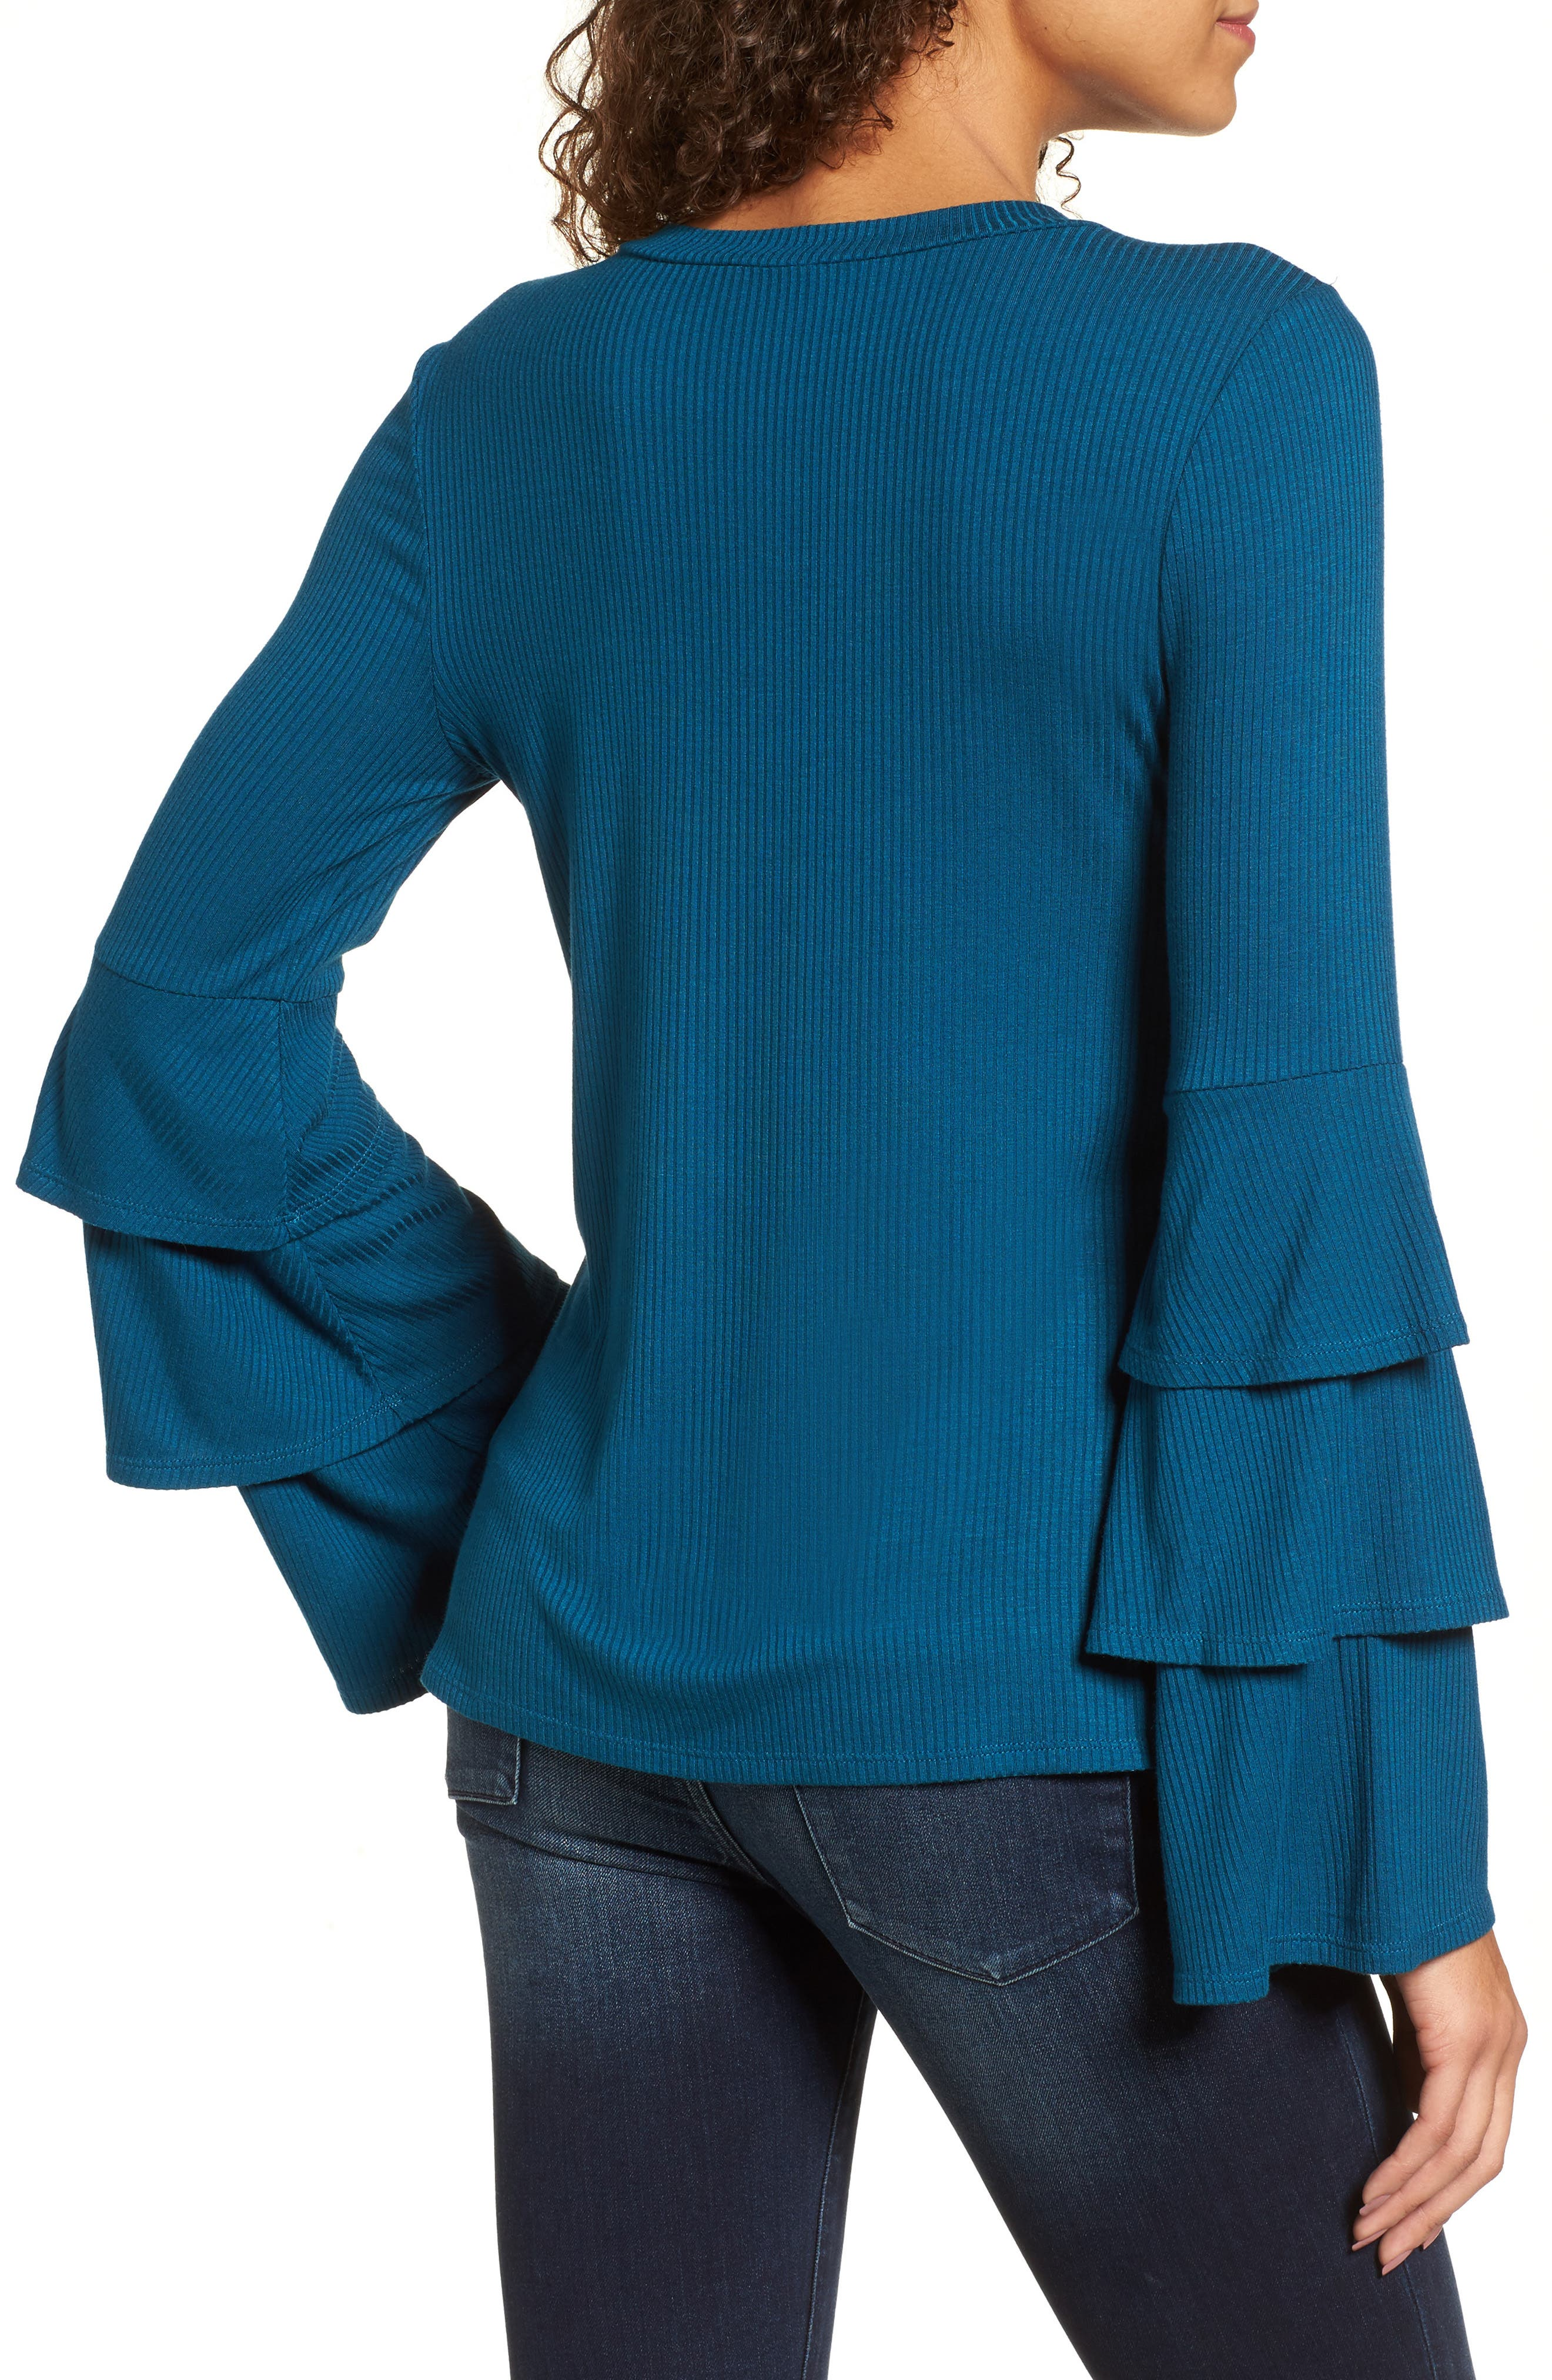 Ruffle Sleeve Ribbed Sweater,                             Alternate thumbnail 7, color,